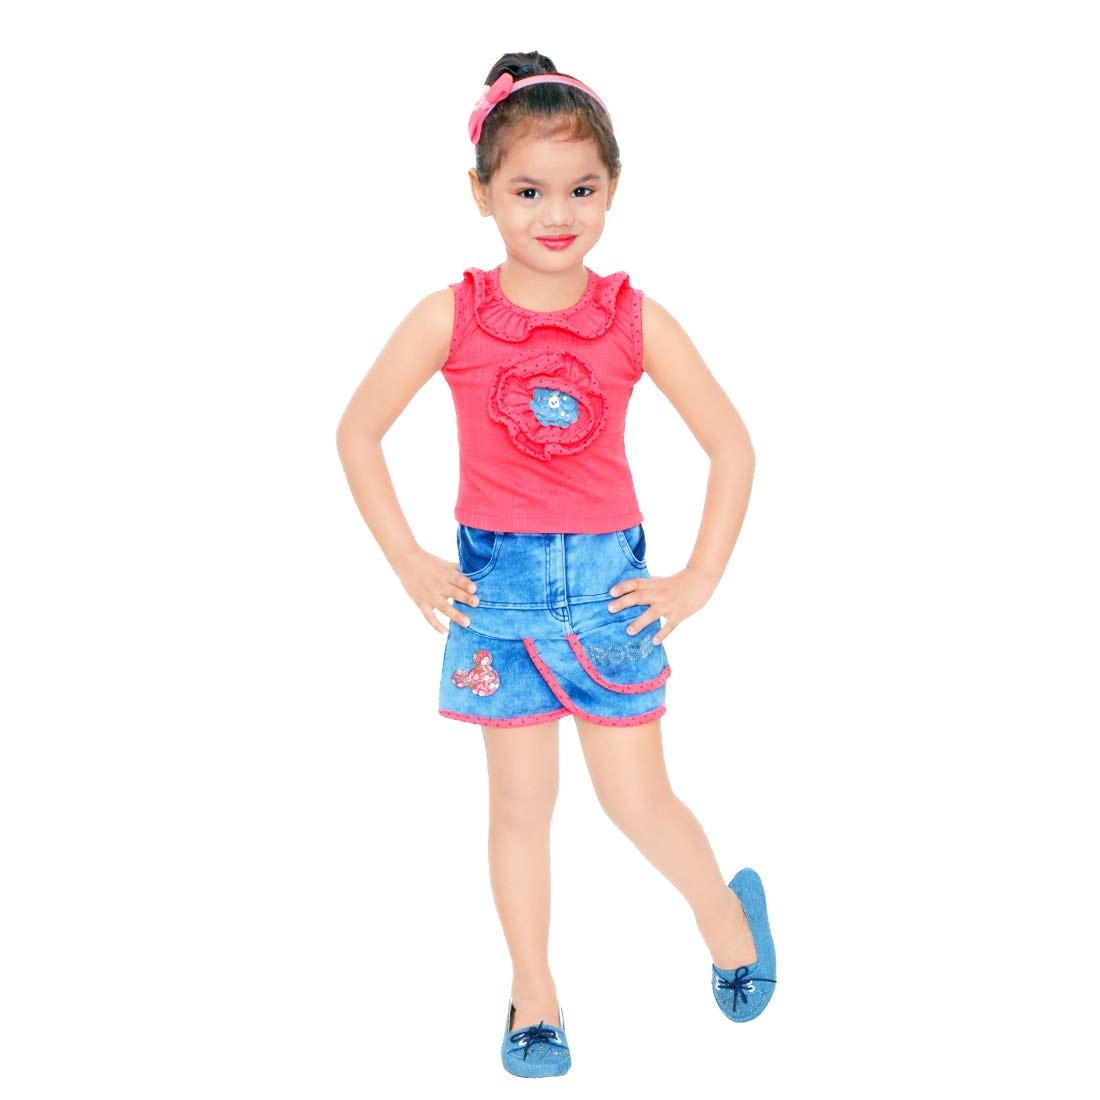 Kids Mandi Floral Kid Girls Dresses, Round Neck Sleeveless Skirt top for Summer Wear, Casual Wear, Party Wear